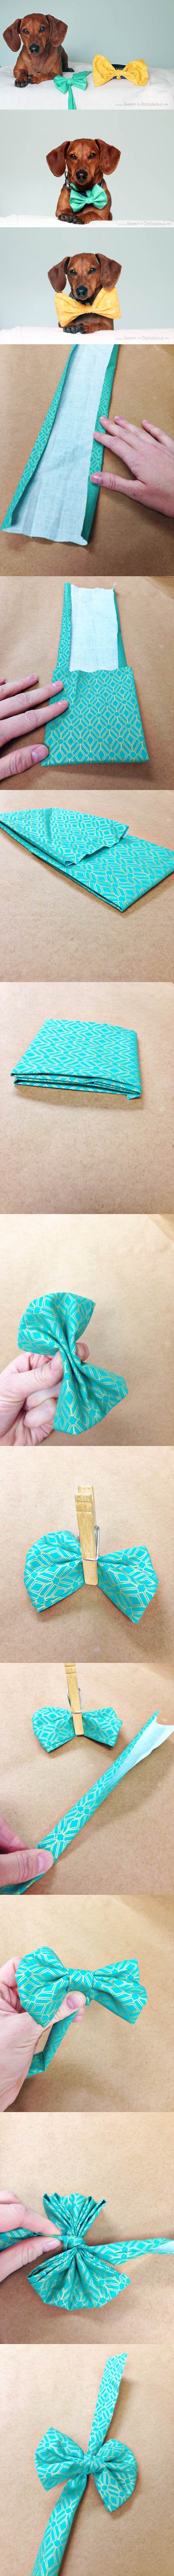 DIY No Sew Easter Bowtie for Dogs 2